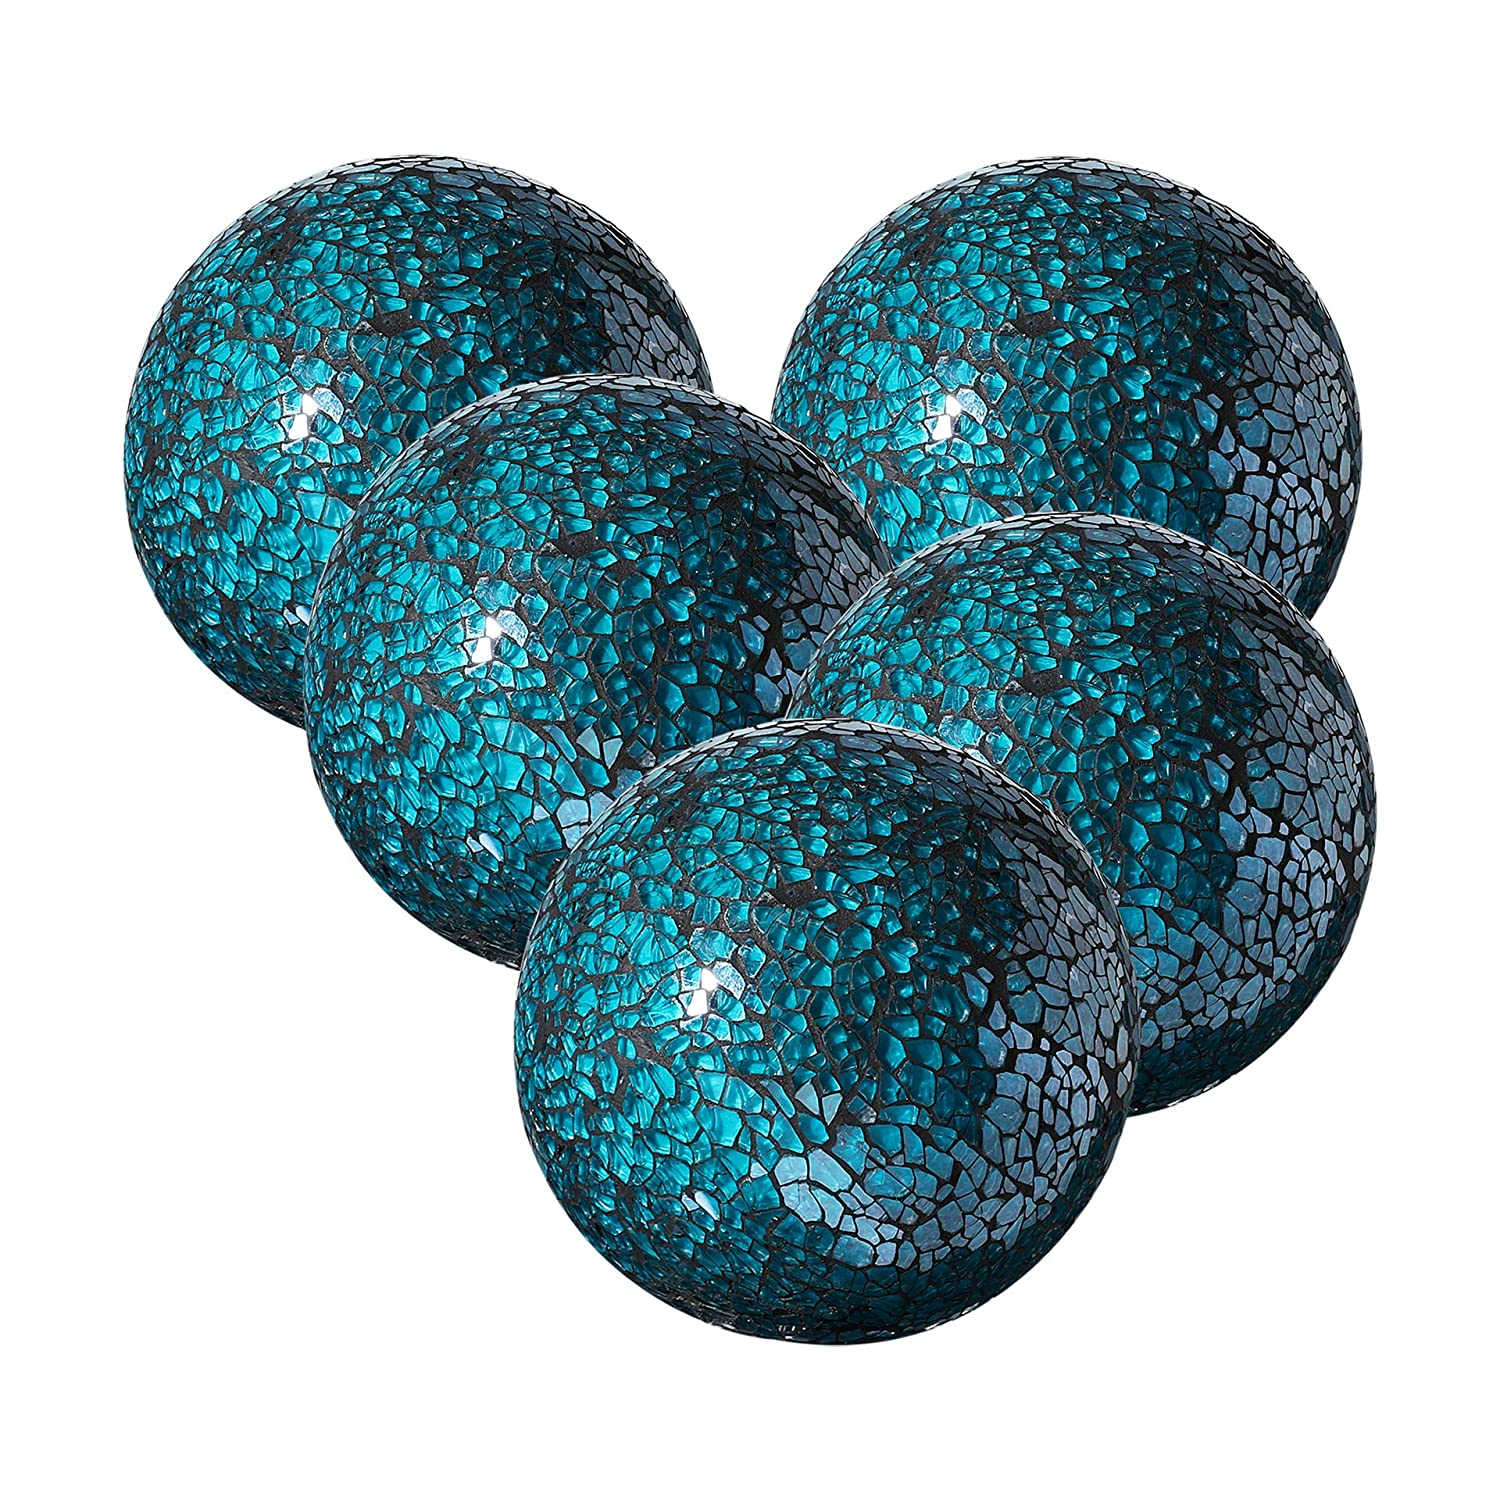 "Whole Housewares Decorative Balls Set of 5 Glass Mosaic Sphere Dia 3"" (Turquoise)"